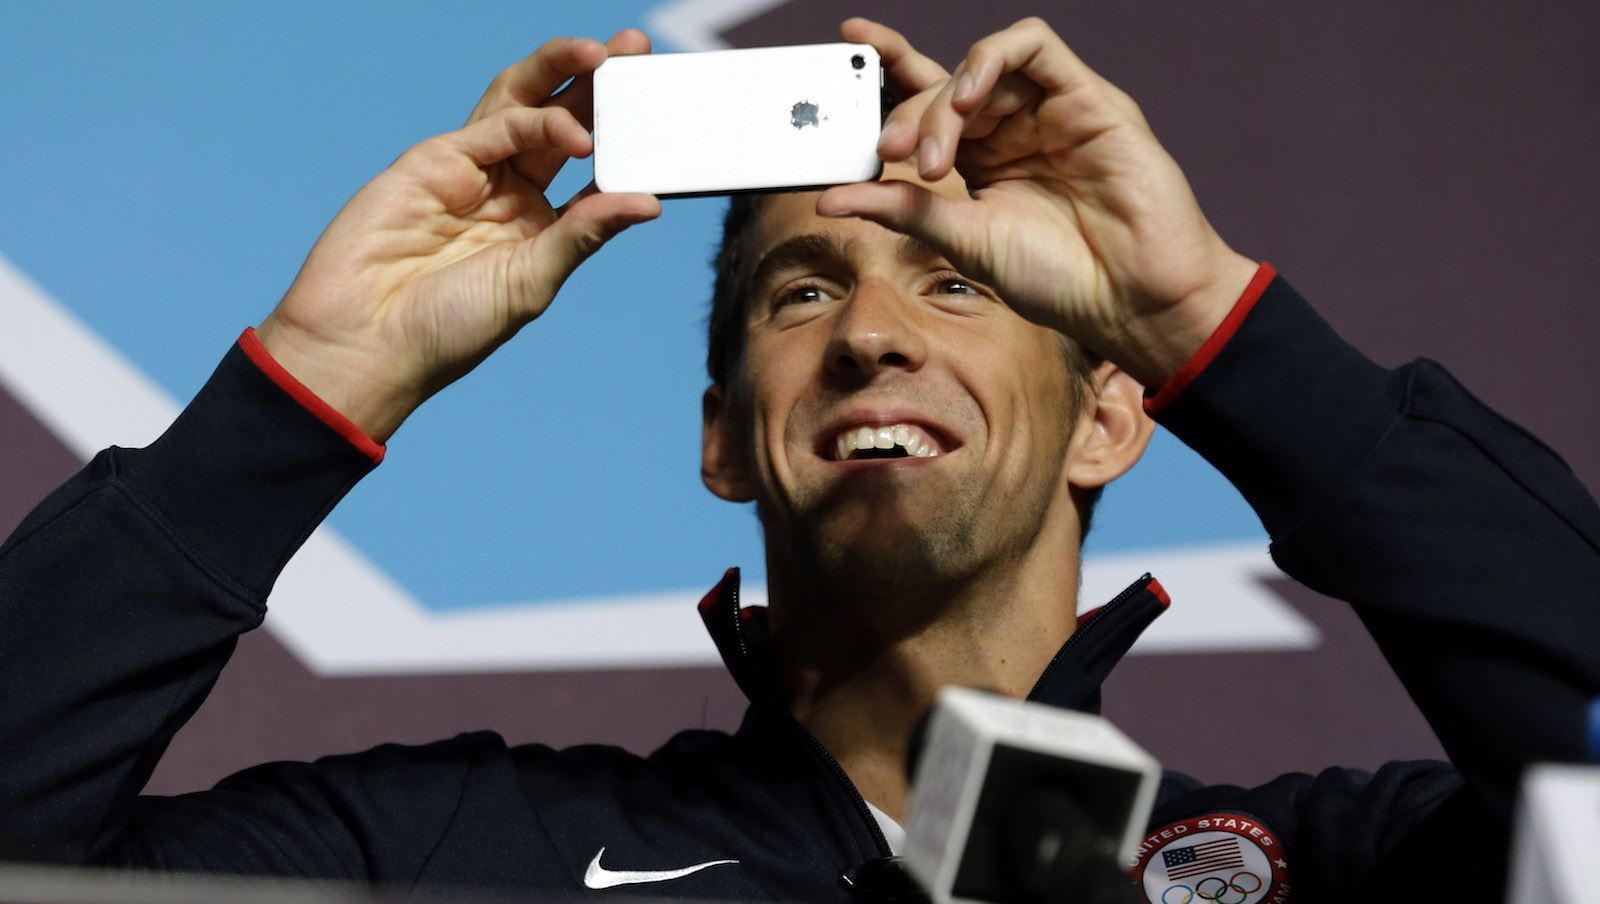 U.S. swimmer Michael Phelps uses his camera phone to take photos of journalists gathered at a press conference held at the media center of the 2012 Summer Olympics, Thursday, July 26, 2012, in London. Phelps insists these will be his last games. The 14-time gold medalist will go out with a bang, aiming to claim the unofficial title of greatest Olympian ever from Soviet gymnast Larisa Latynina. (AP Photo/Ng Han Guan)